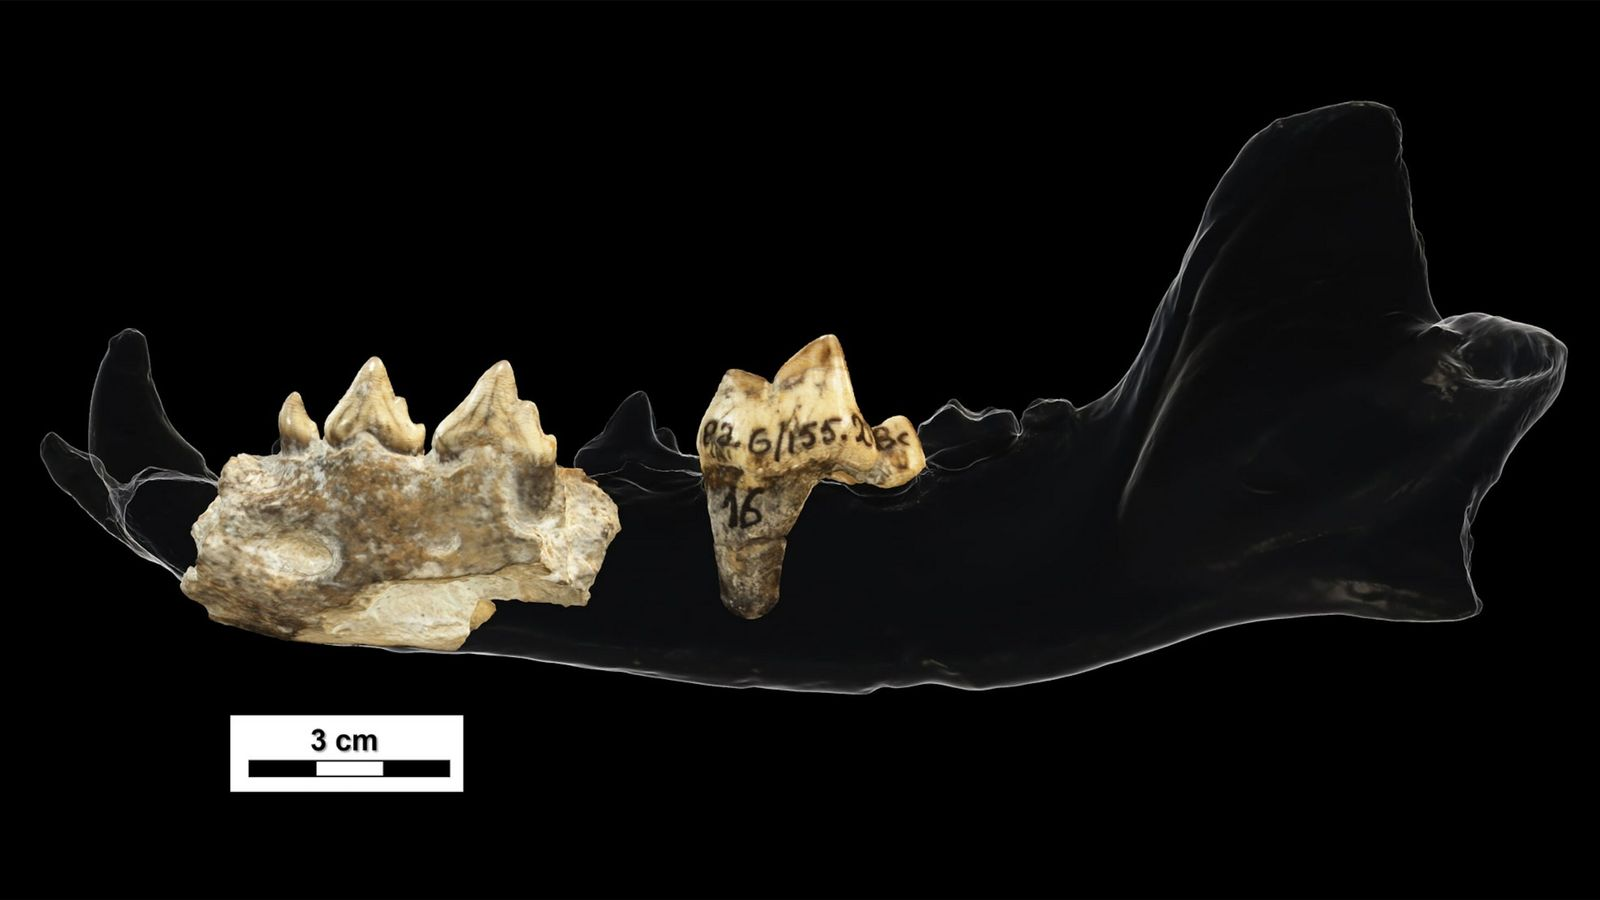 These teeth and jaw fragments, found at Georgia's 1.8-million-year-old Dmanisi site, belong to an extinct canid ...